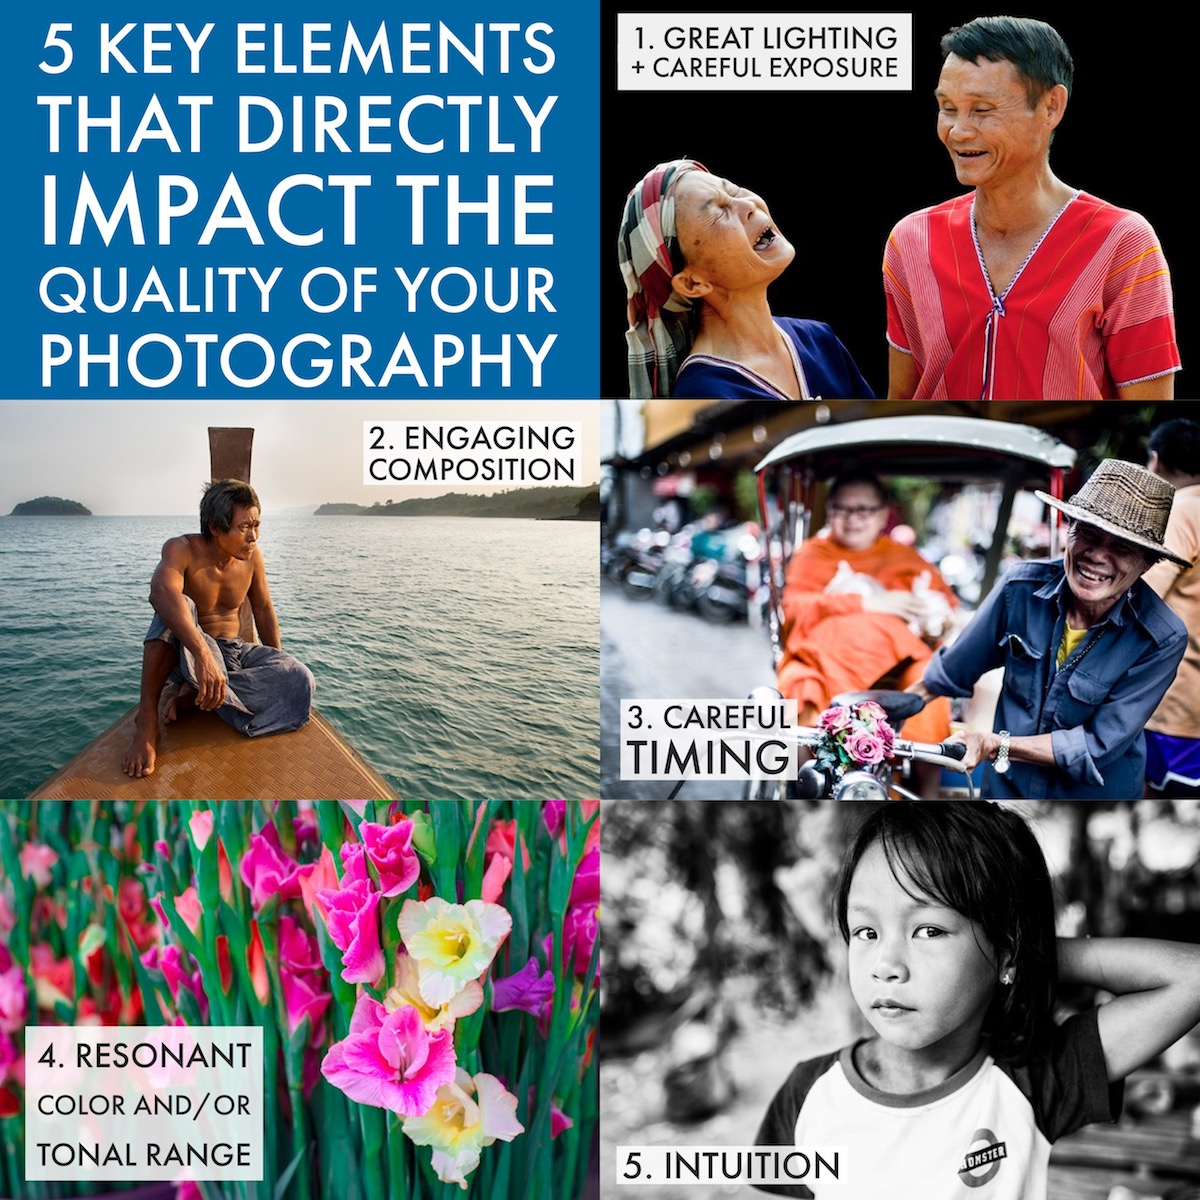 5 Key Elements that Directly Impact the Quality of Your Photography